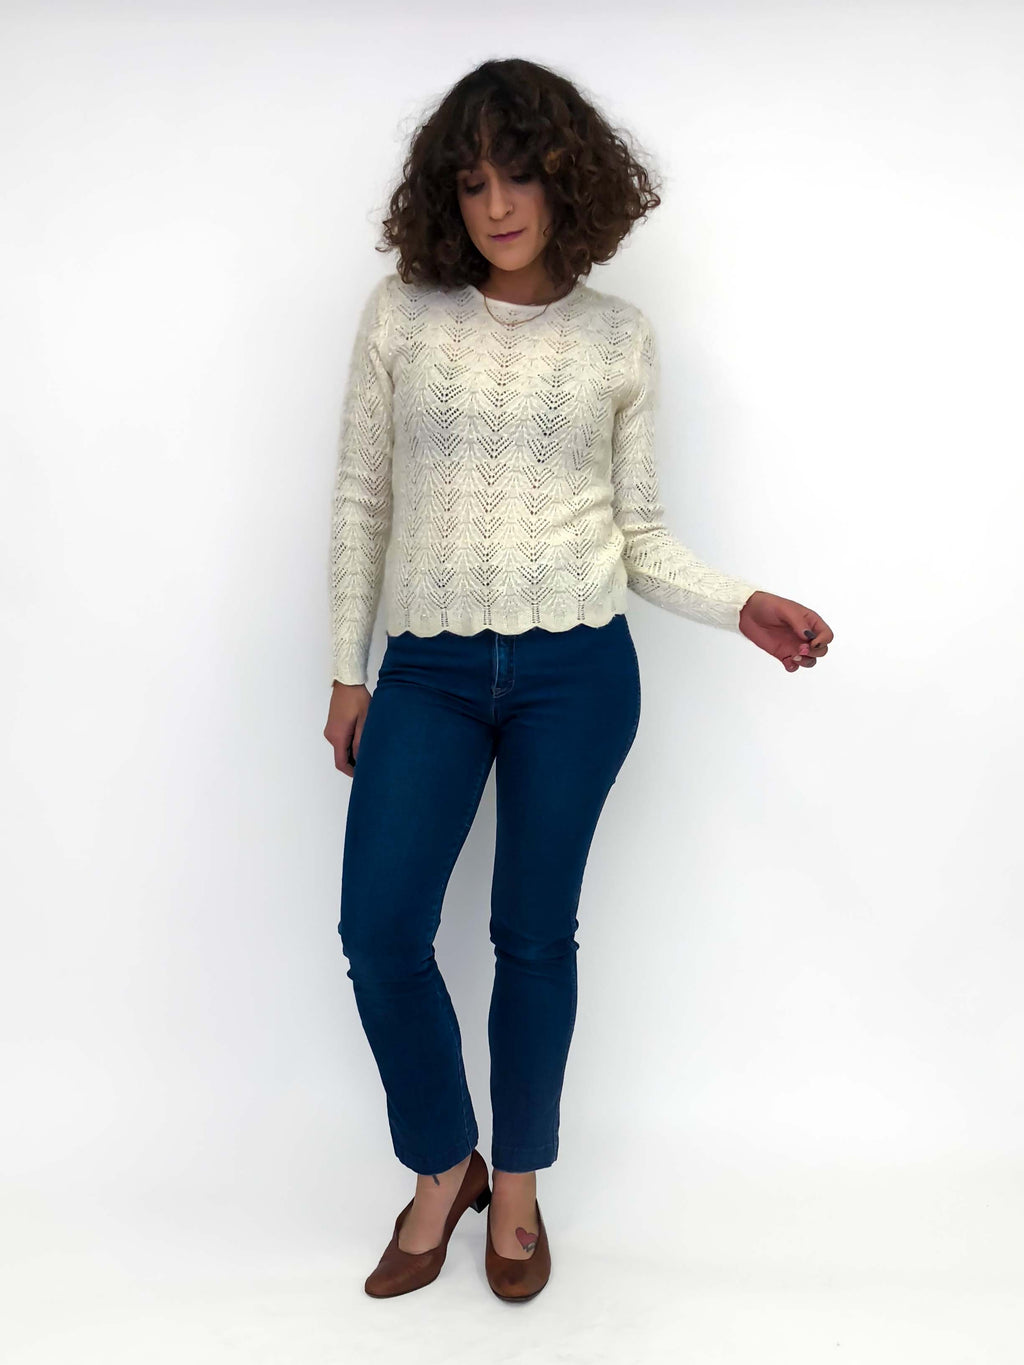 Vintage Scalloped Sweater : Small : Ana Sweater